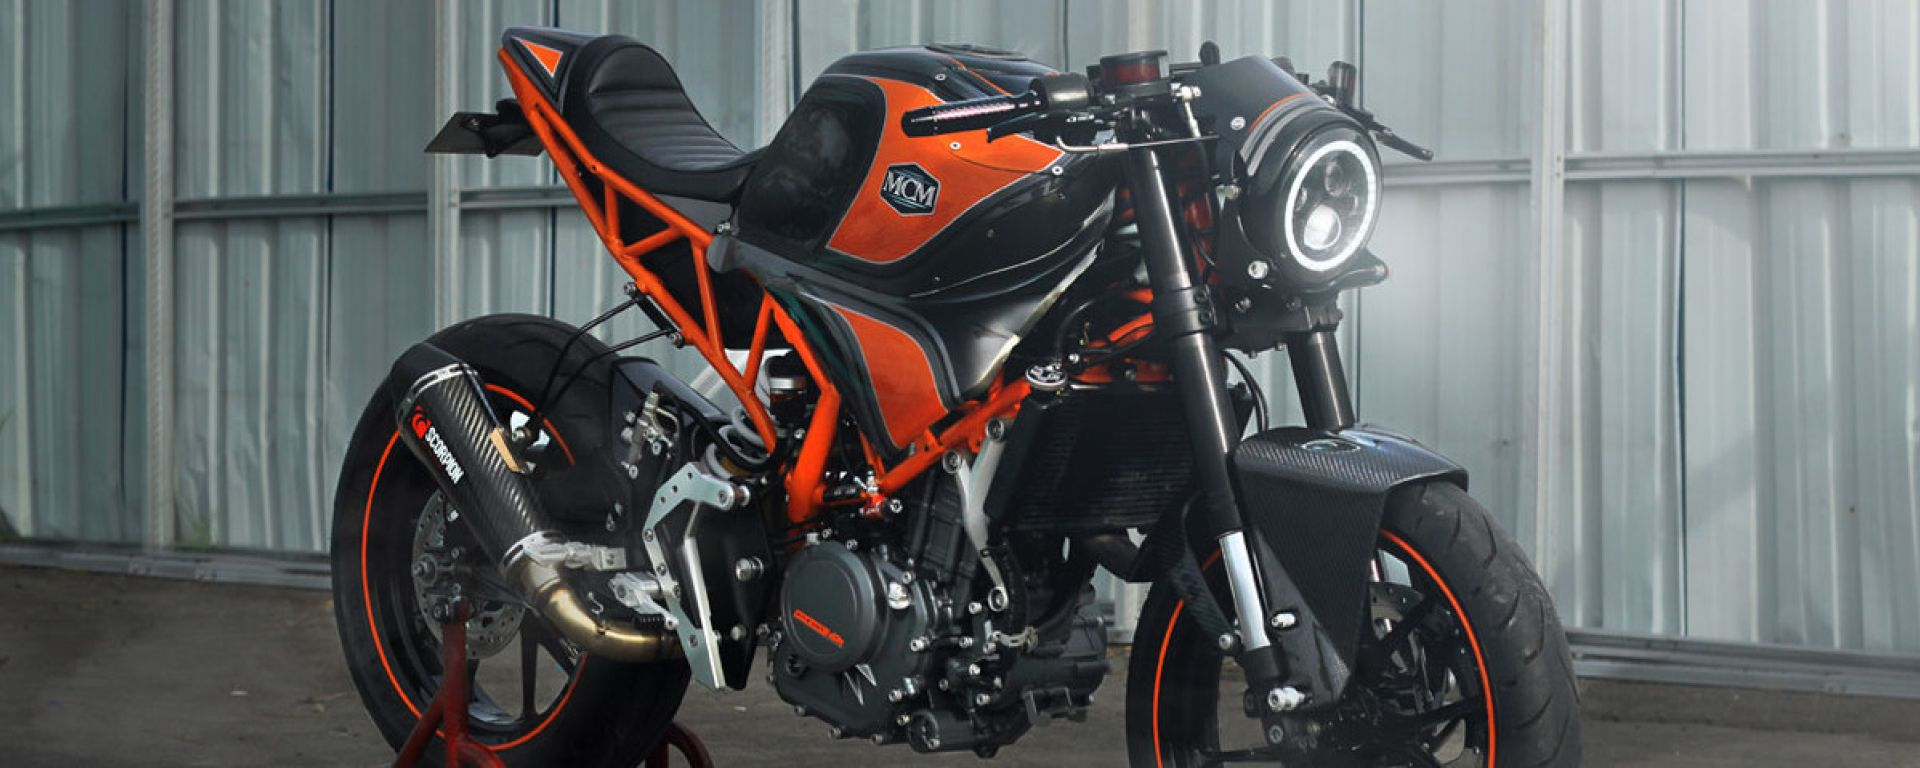 KTM RC 250 Café Racer by Minority Custom Motorcycles